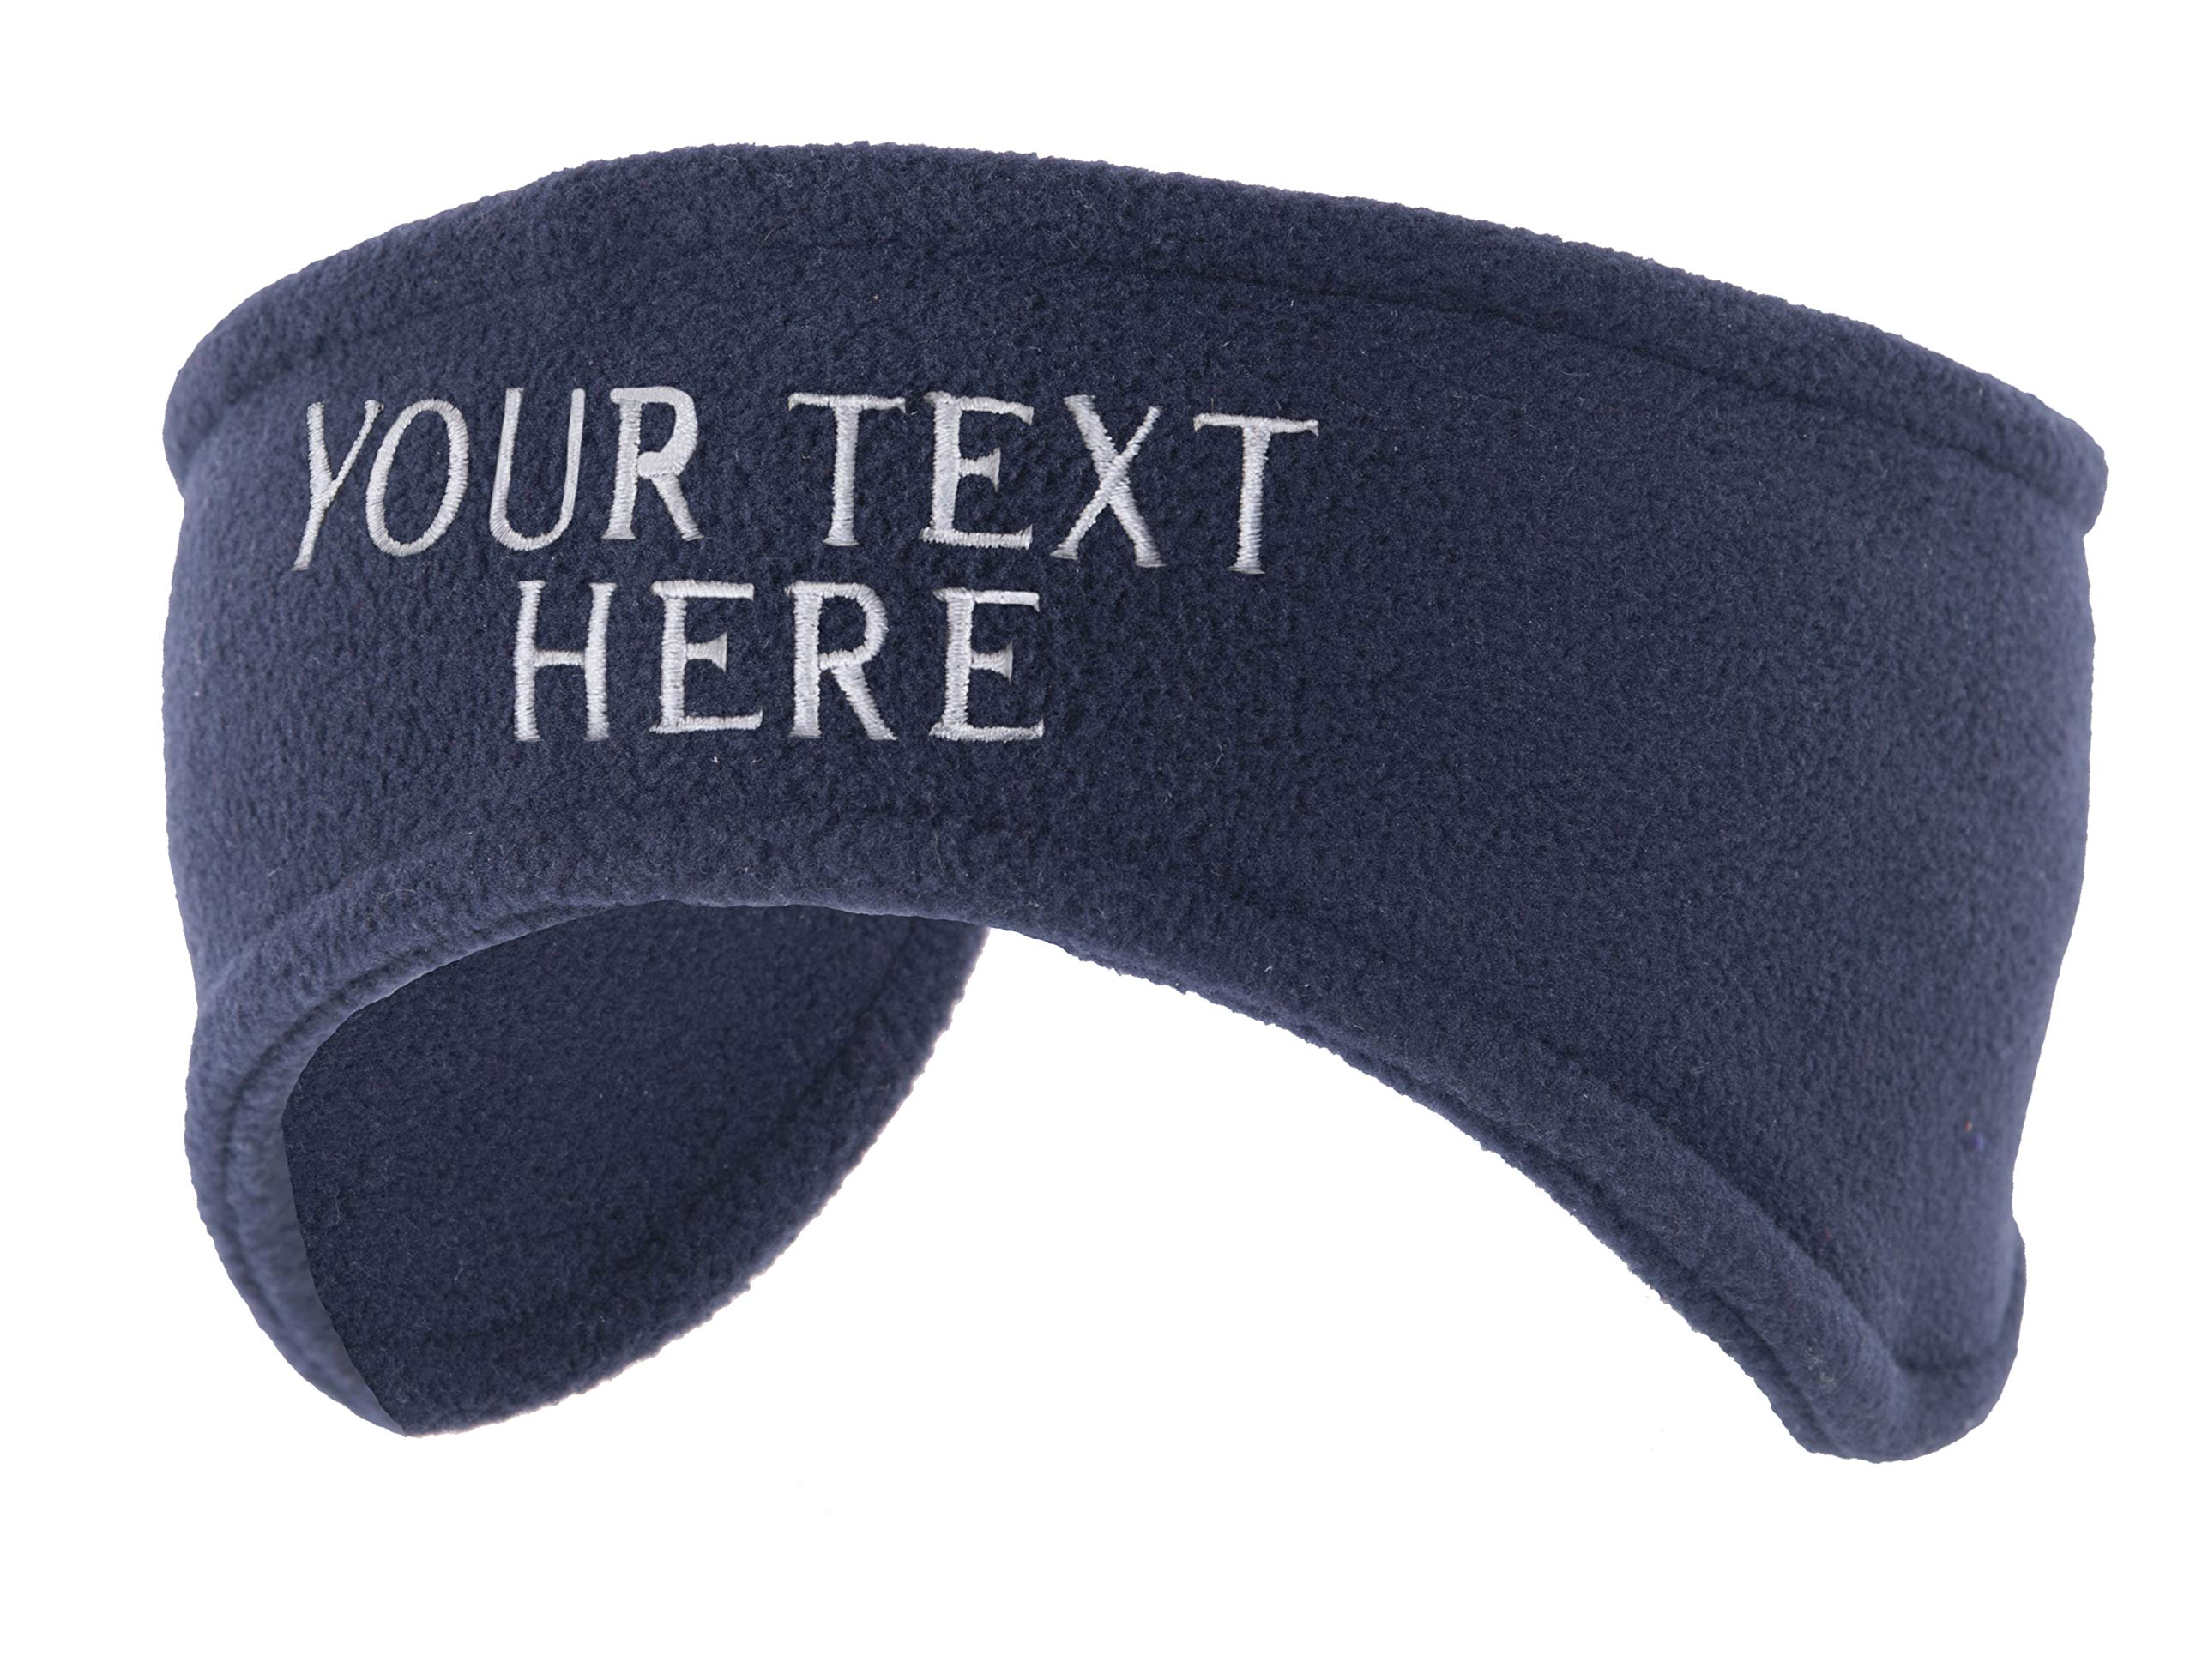 Custom Headbands for Sport Teams, and Cheerleaders, Winter Fleece Ear warmers - 3PK Navy CA4100Cheer